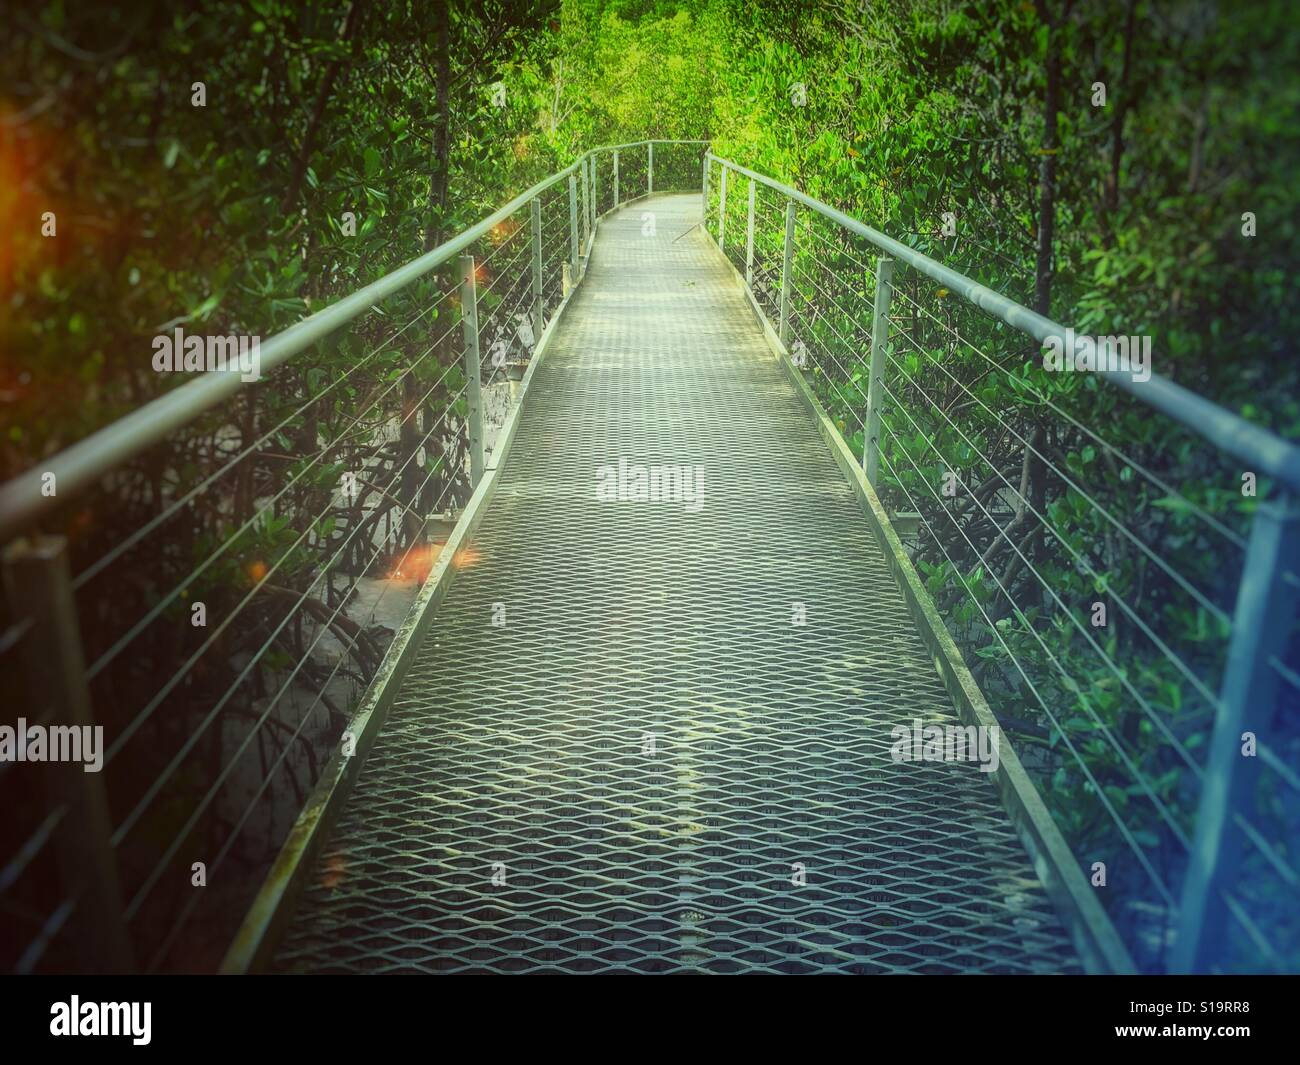 Walk in the mangrove. - Stock Image